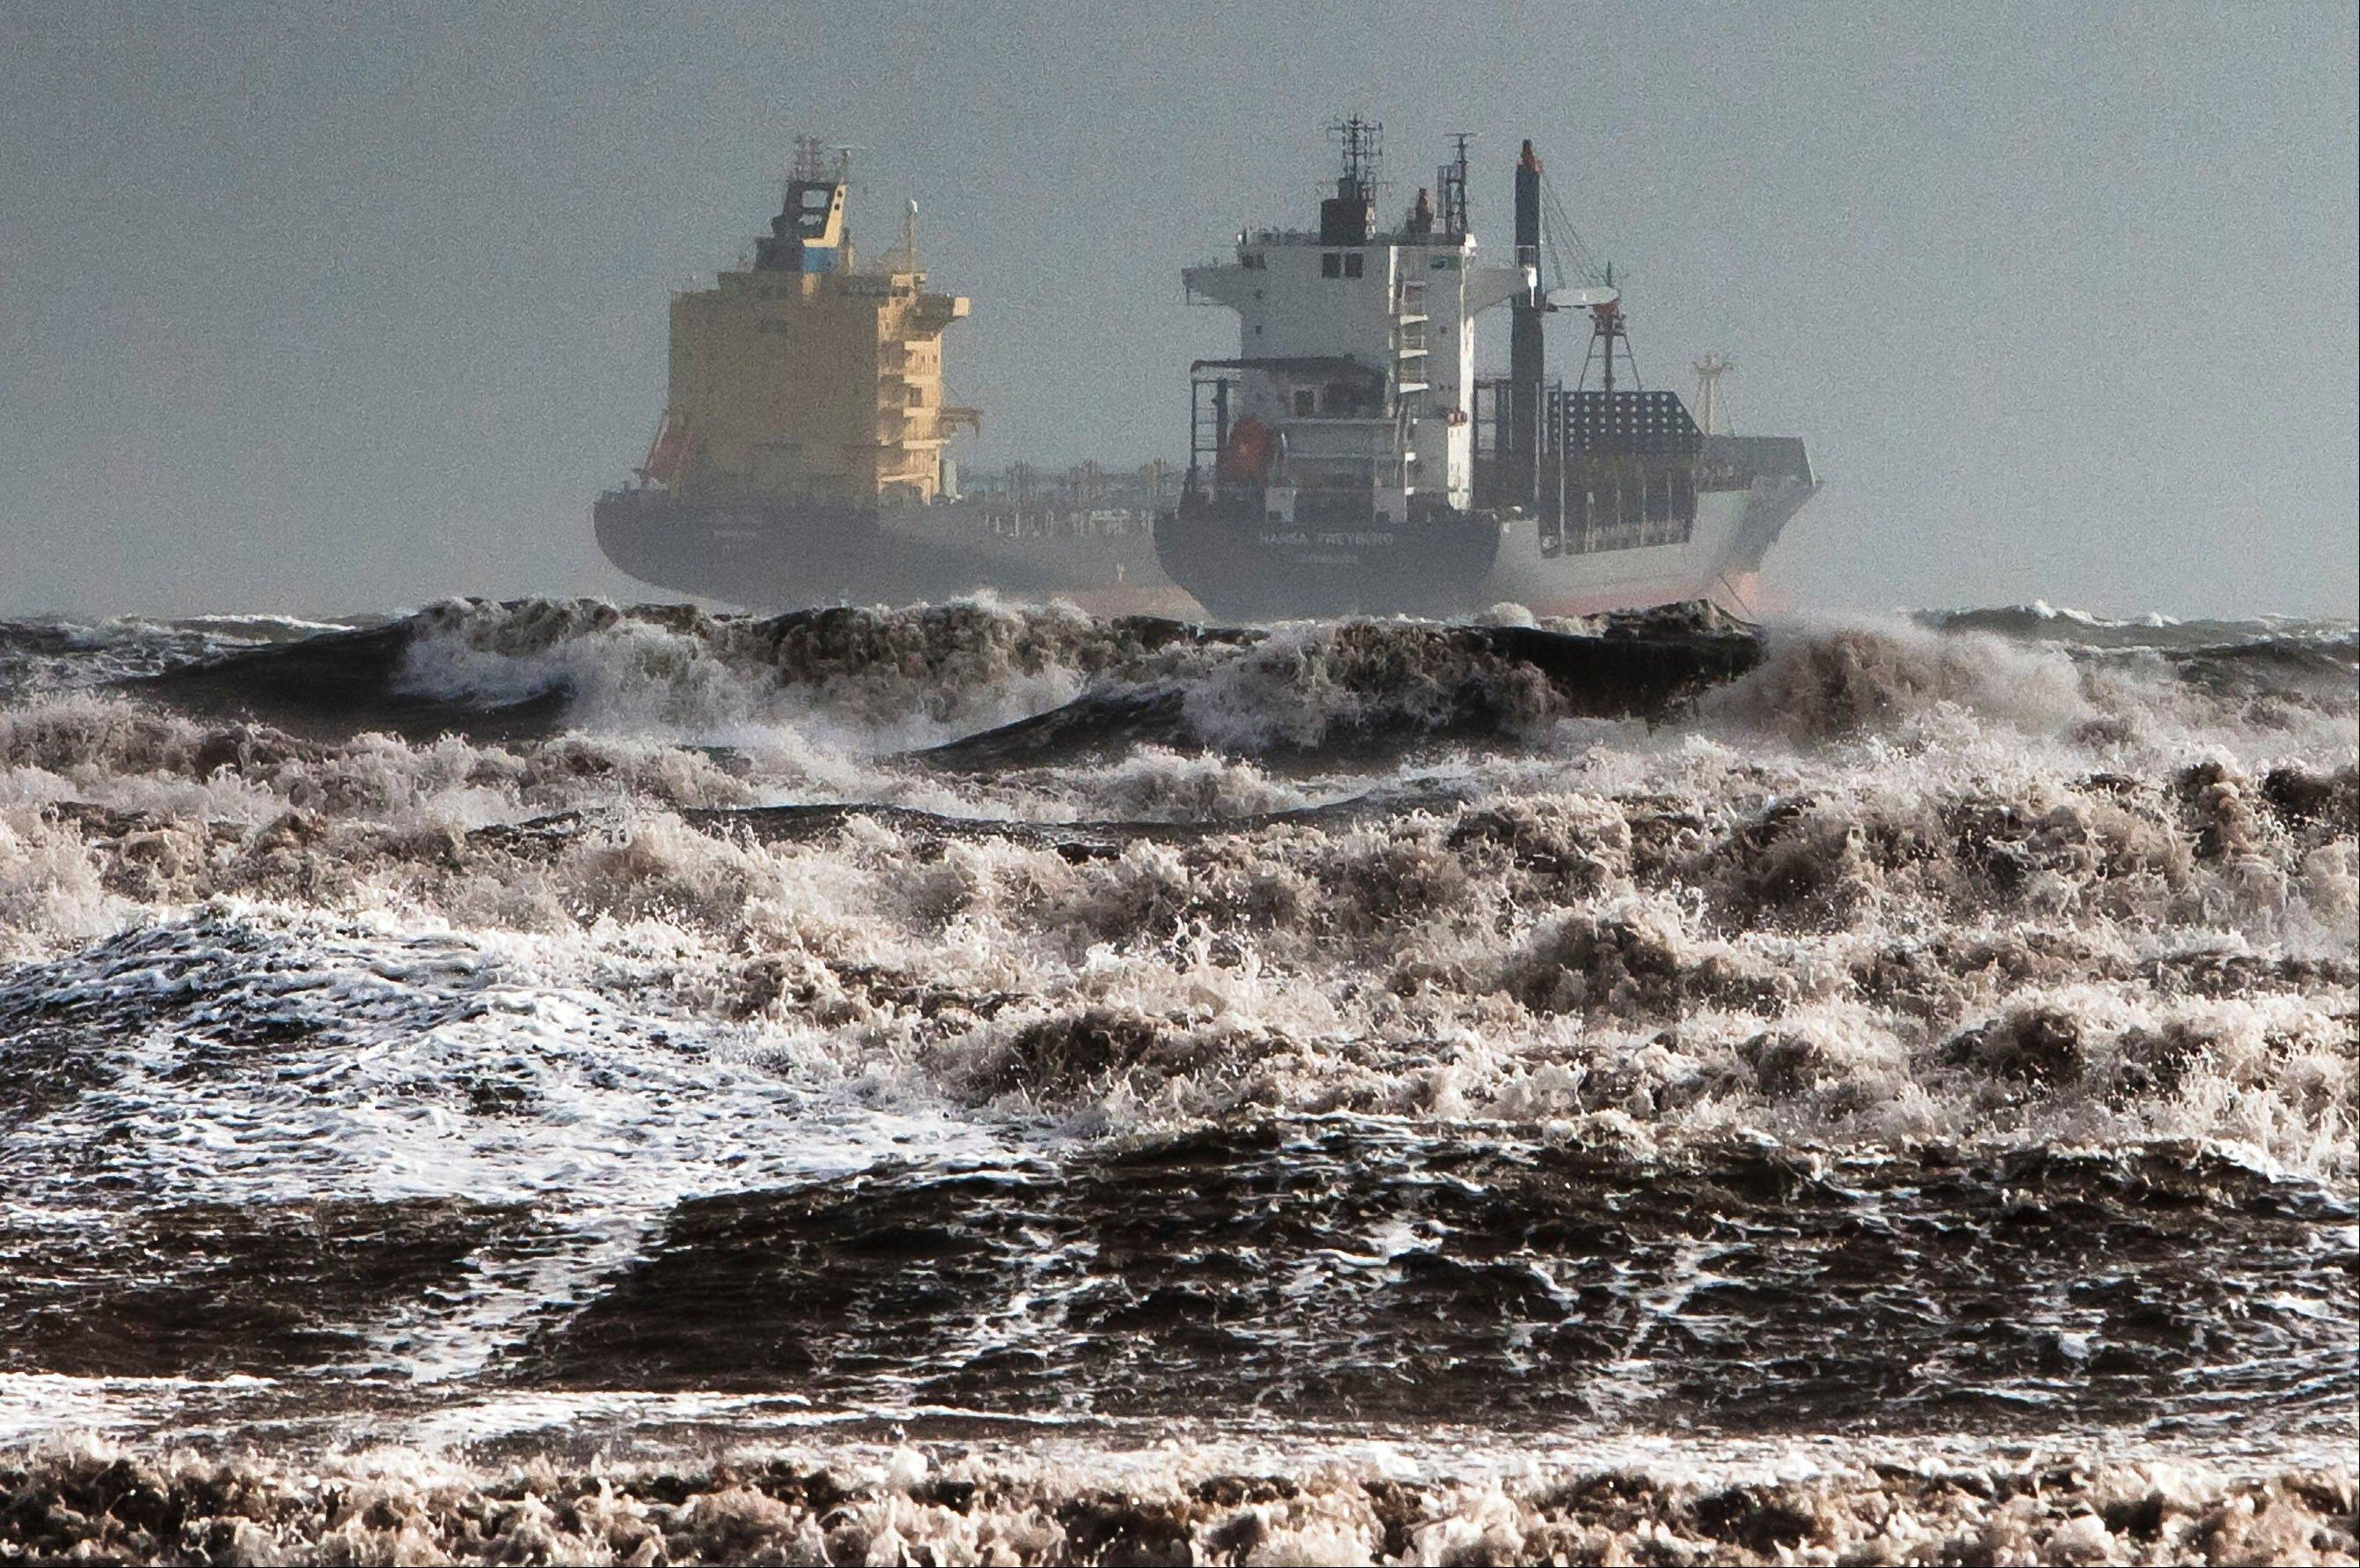 Two tankers are battered by gale winds while at the roadstead in the rough waters of the Gulf of Cagliari, Sardinia, Monday, Nov. 18, 2013. A violent rainstorm that flooded entire parts of the Mediterranean island of Sardinia has led to the deaths of at least 17 people.